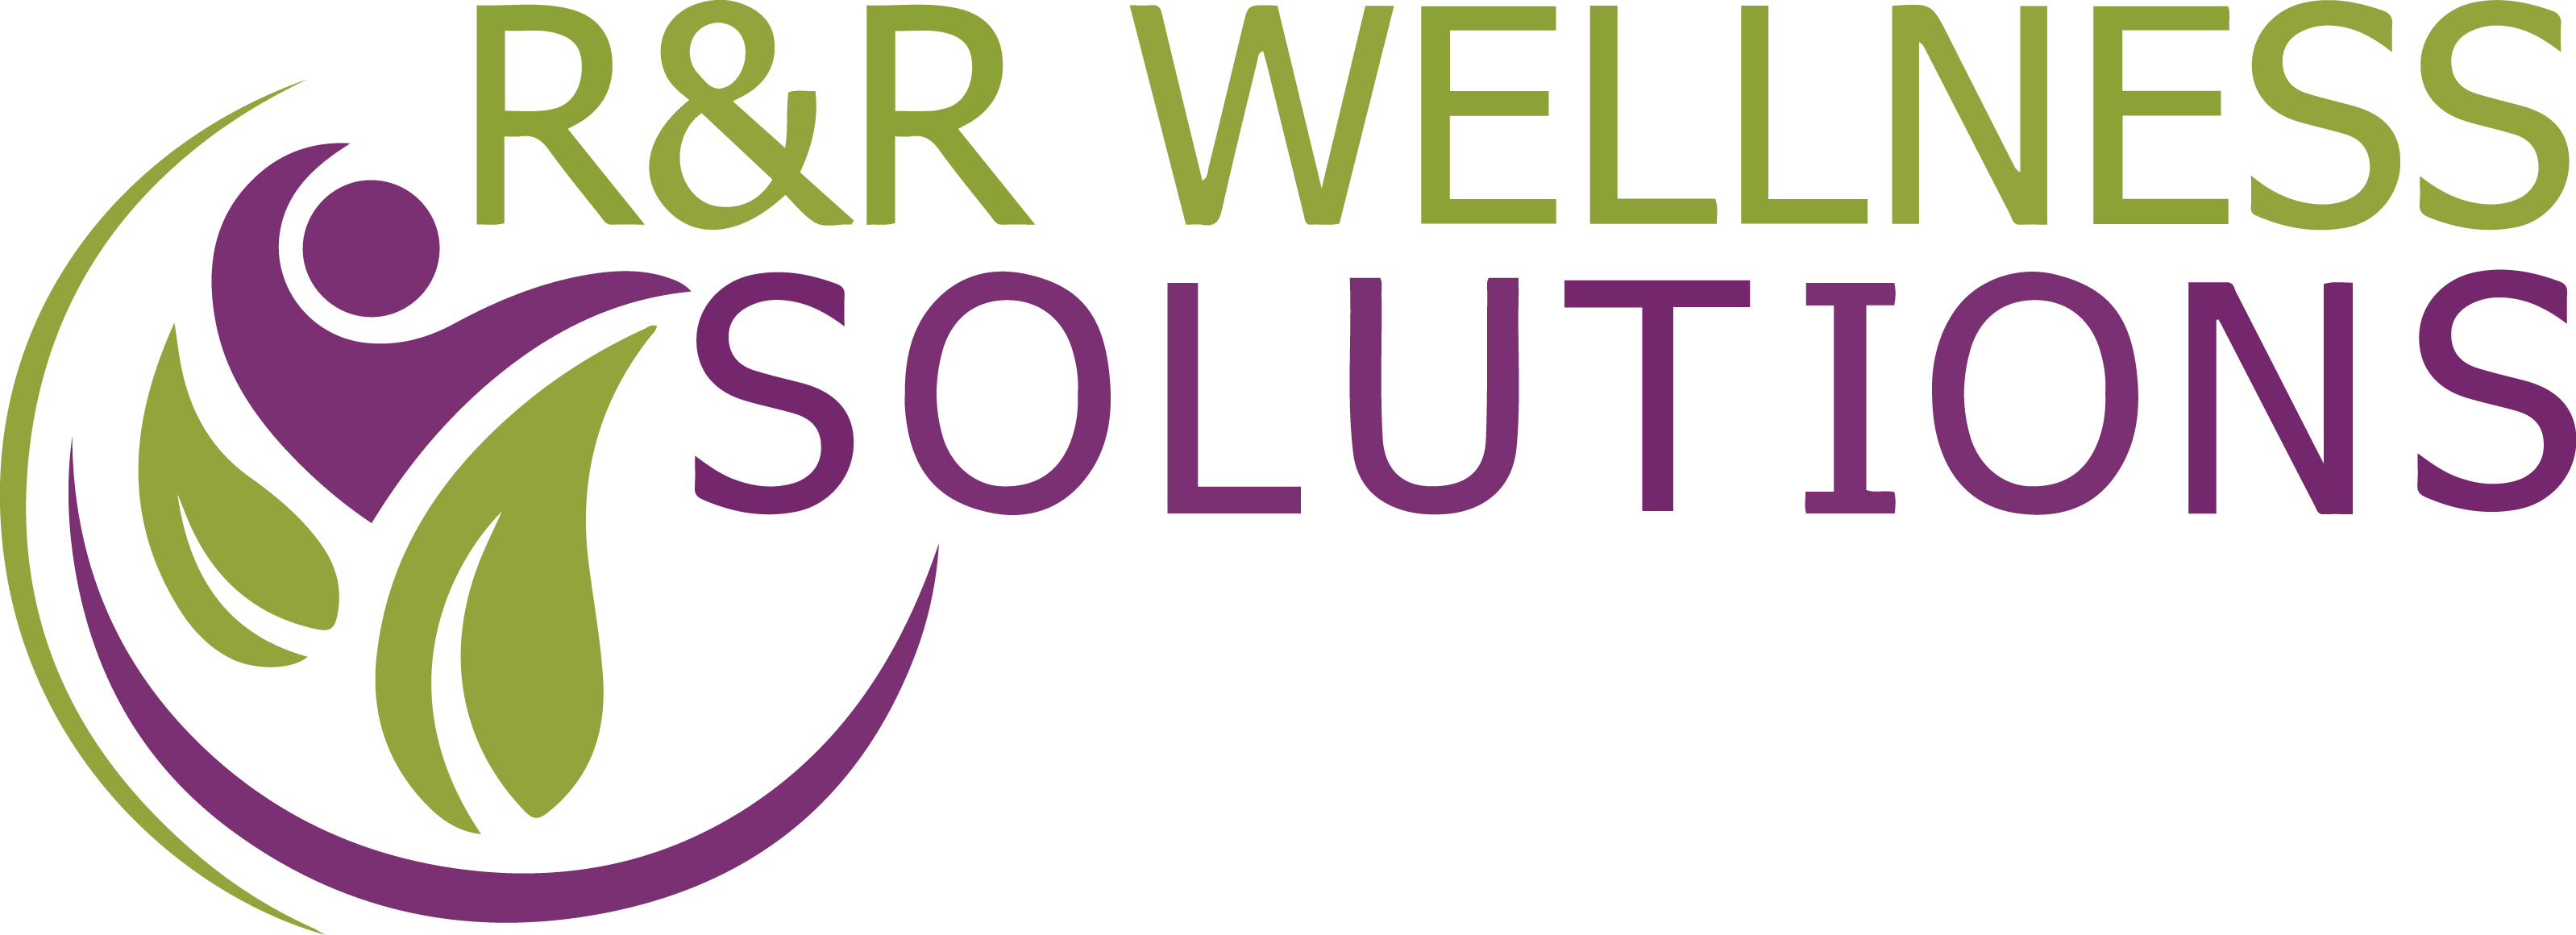 R&R Wellness Solutions